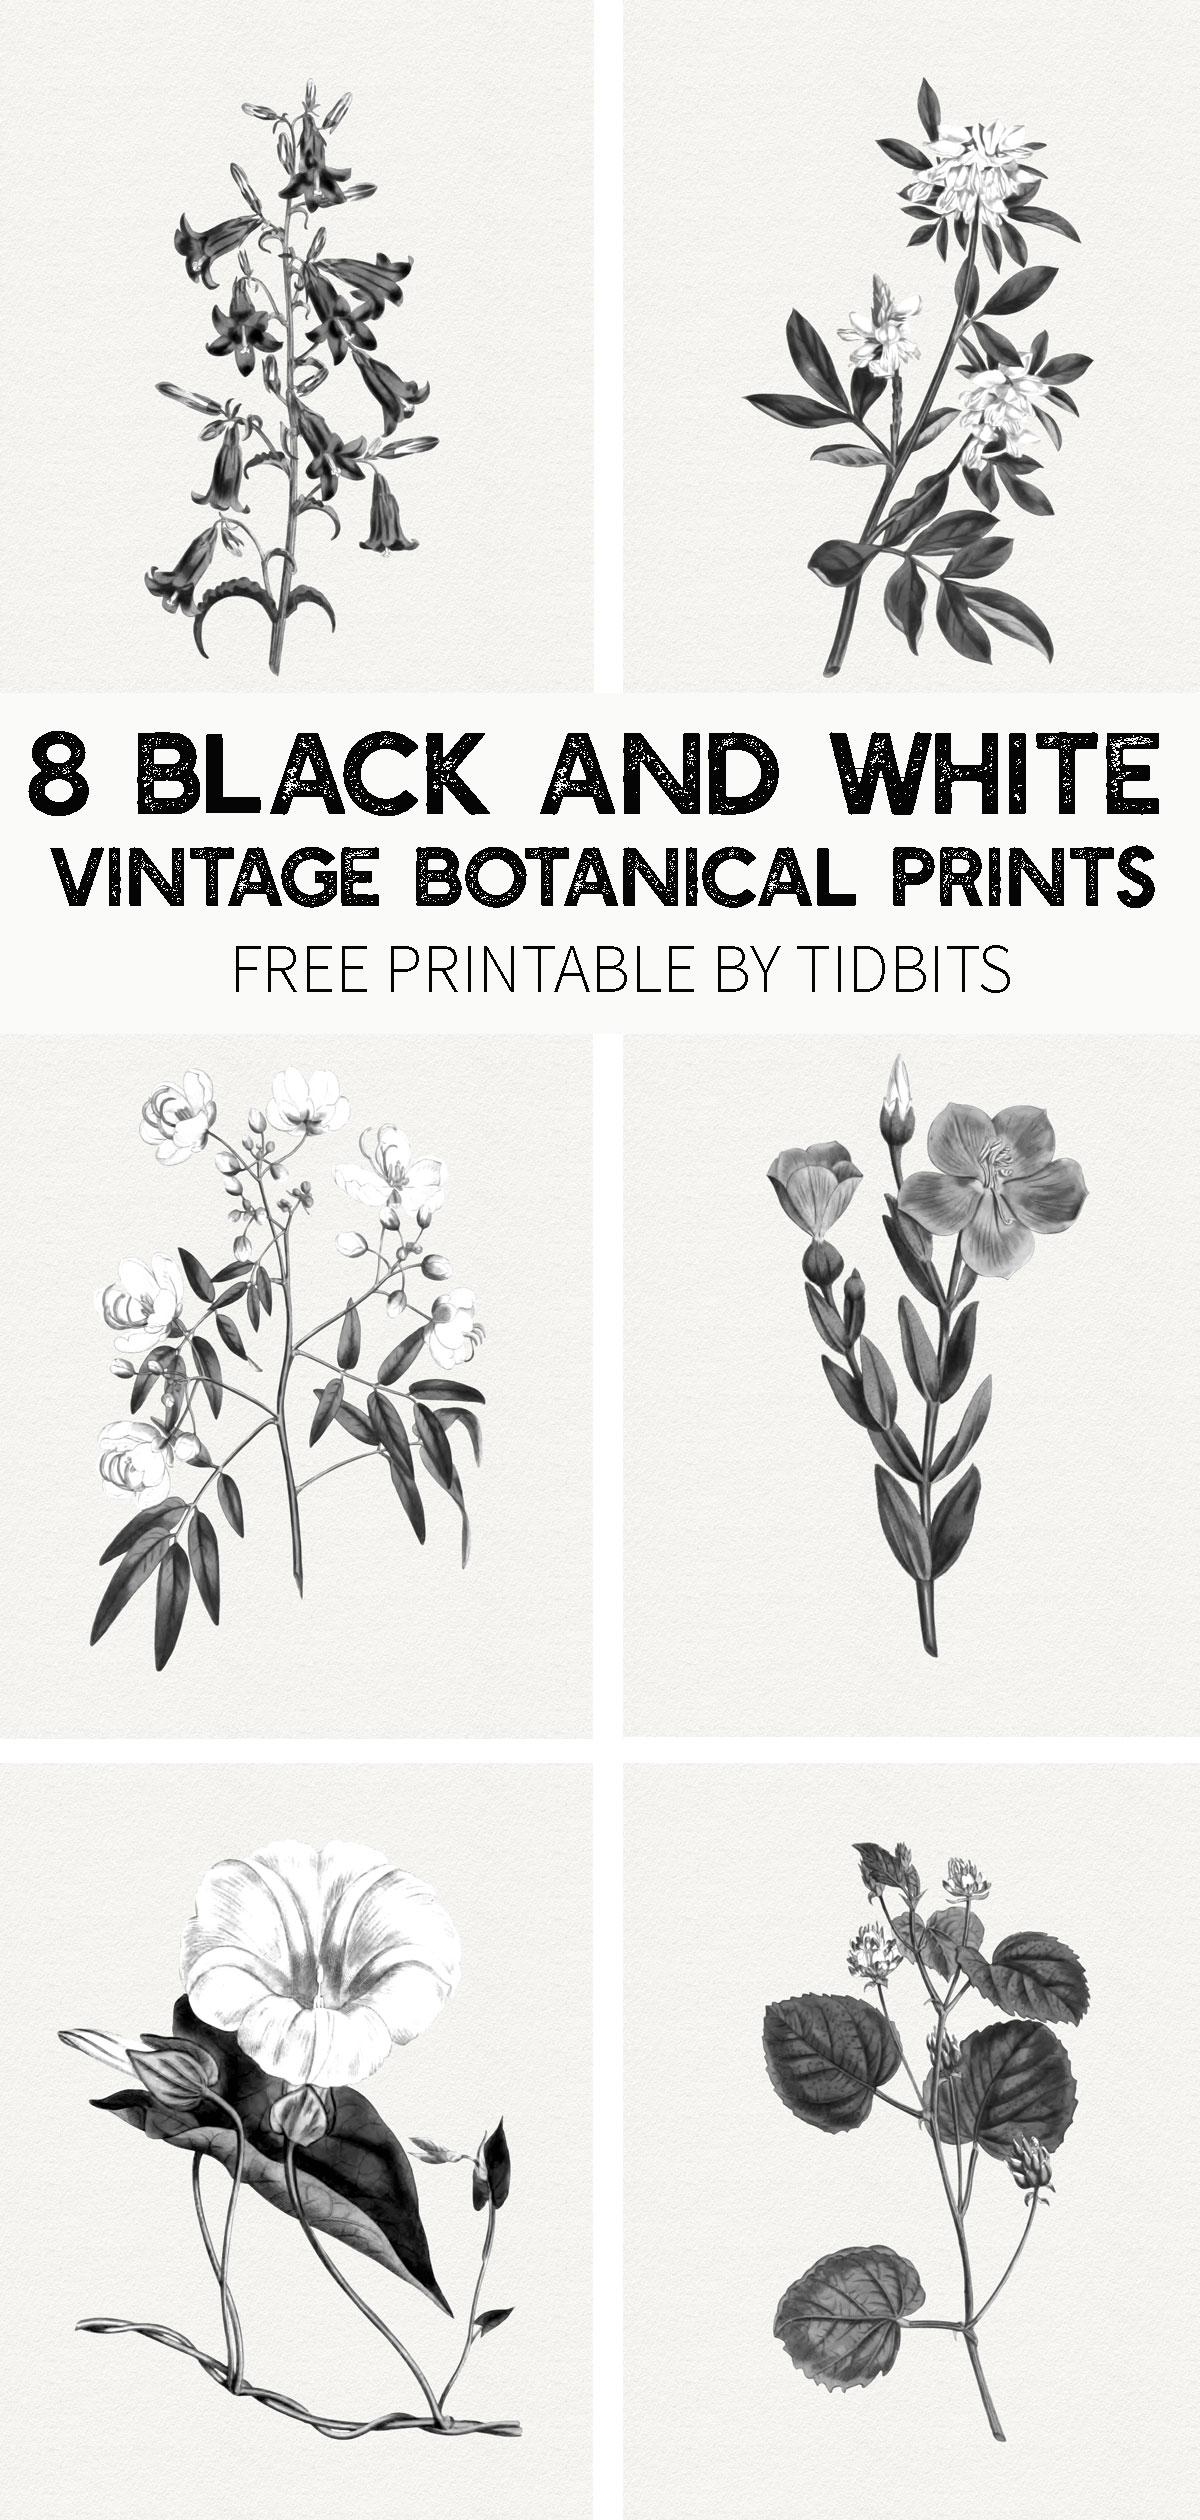 graphic about Printable Prints named Cost-free Black and White Classic Botanical Prints - Tidbits